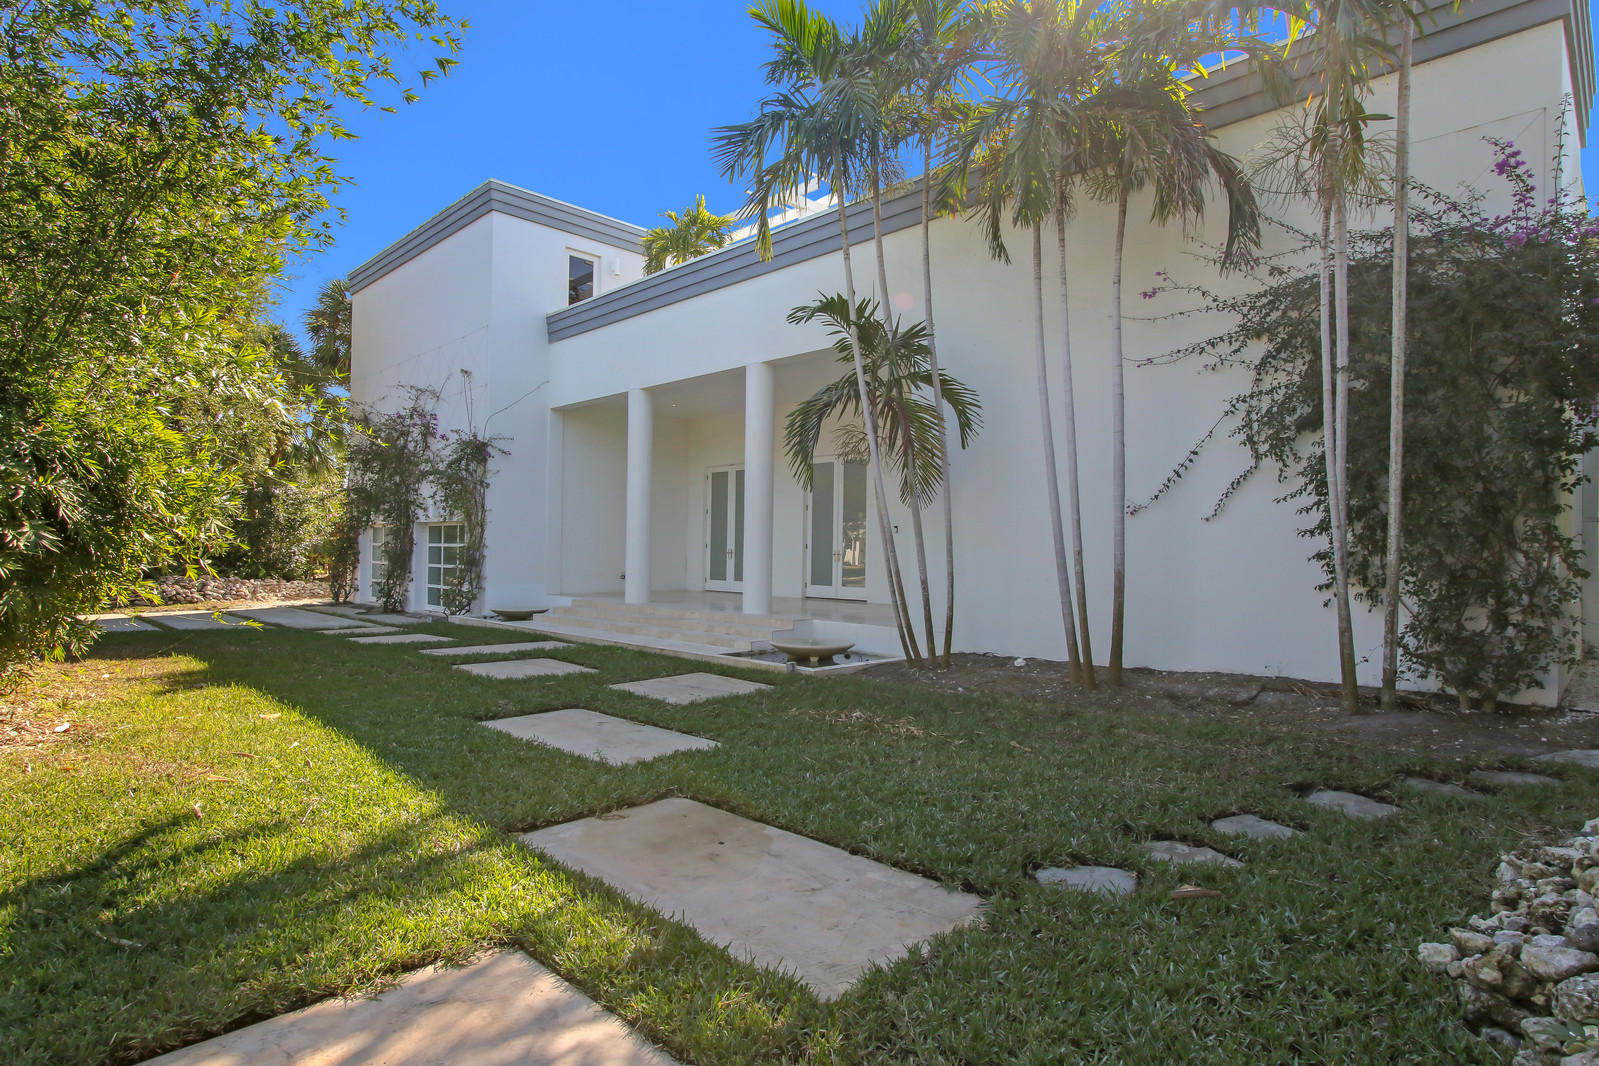 Home for sale in MIRAMAR West Palm Beach Florida